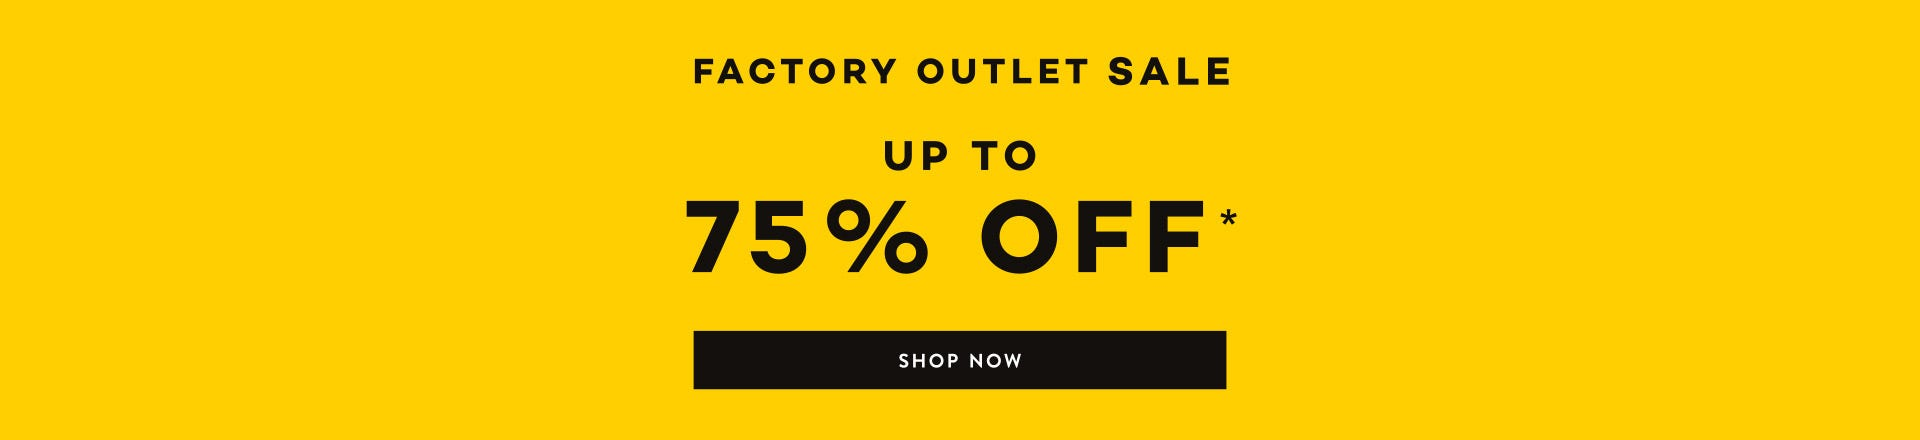 Black Pepper factory outlet sale | Up to 75% off